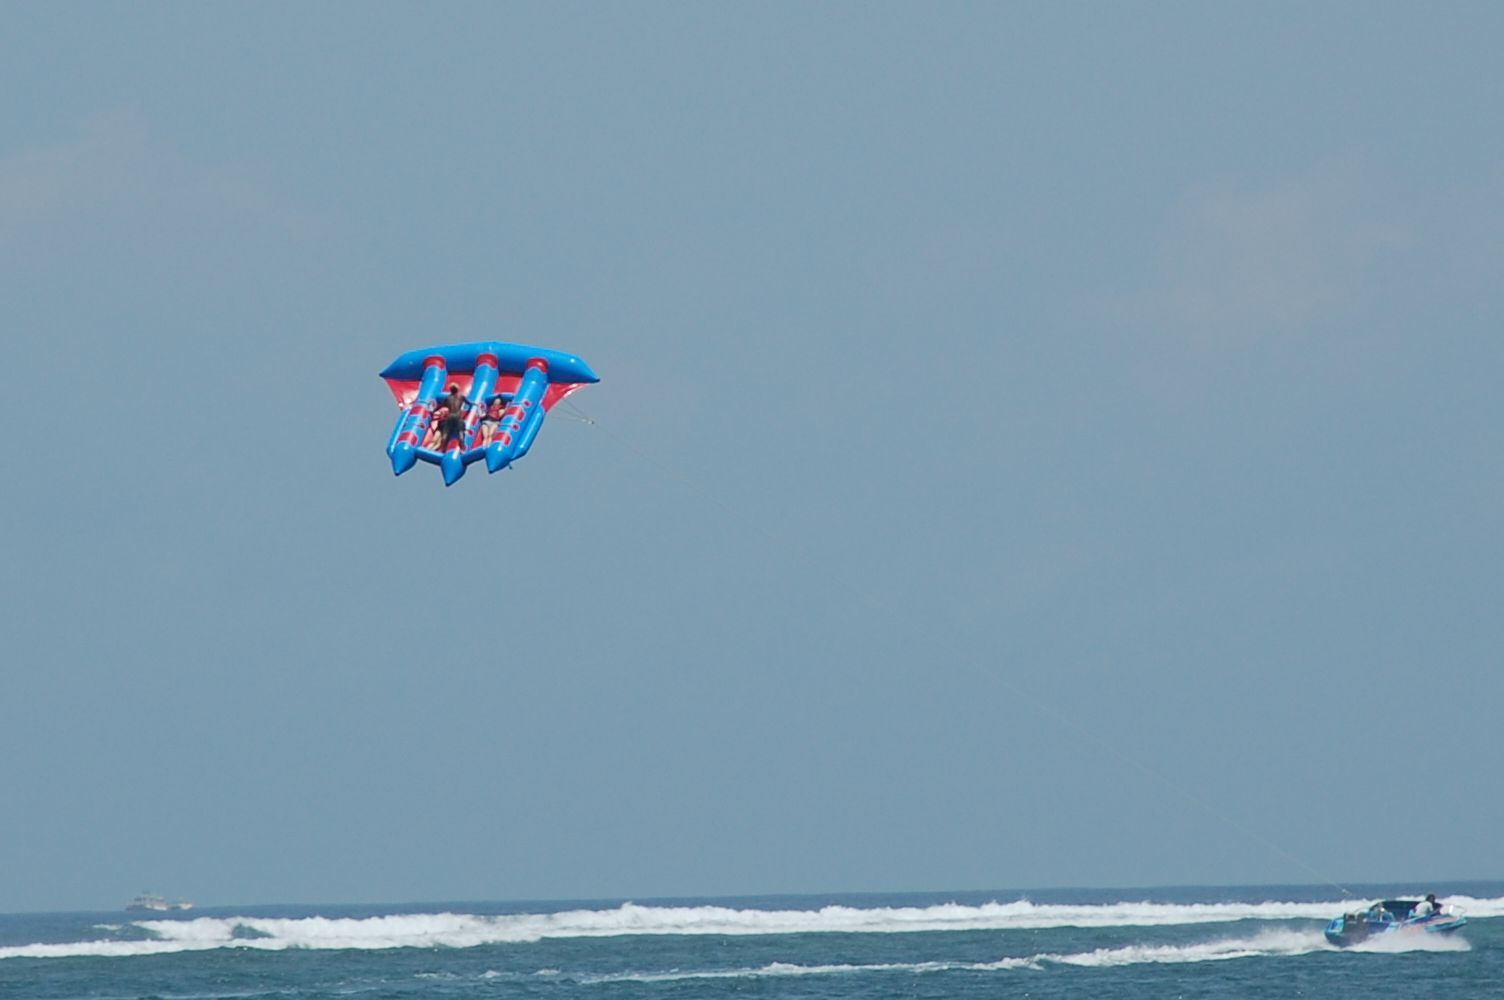 Flying fish water sport - photo#3